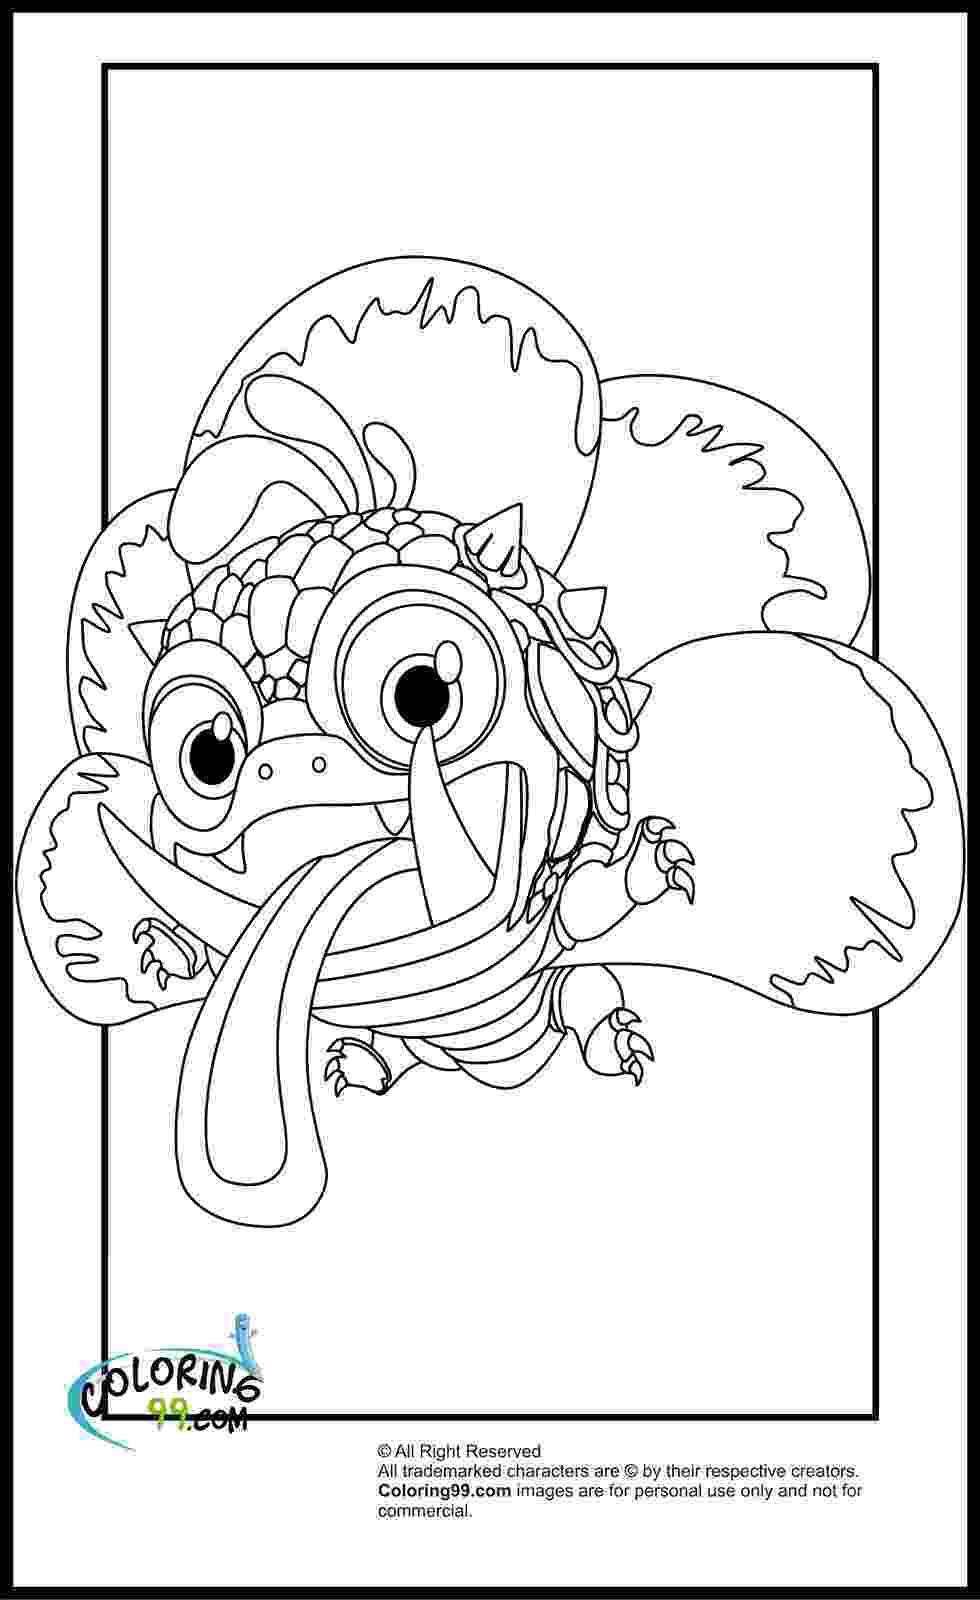 skylanders coloring pages pop fizz free printable adult swear word coloring pages download pop coloring pages skylanders fizz